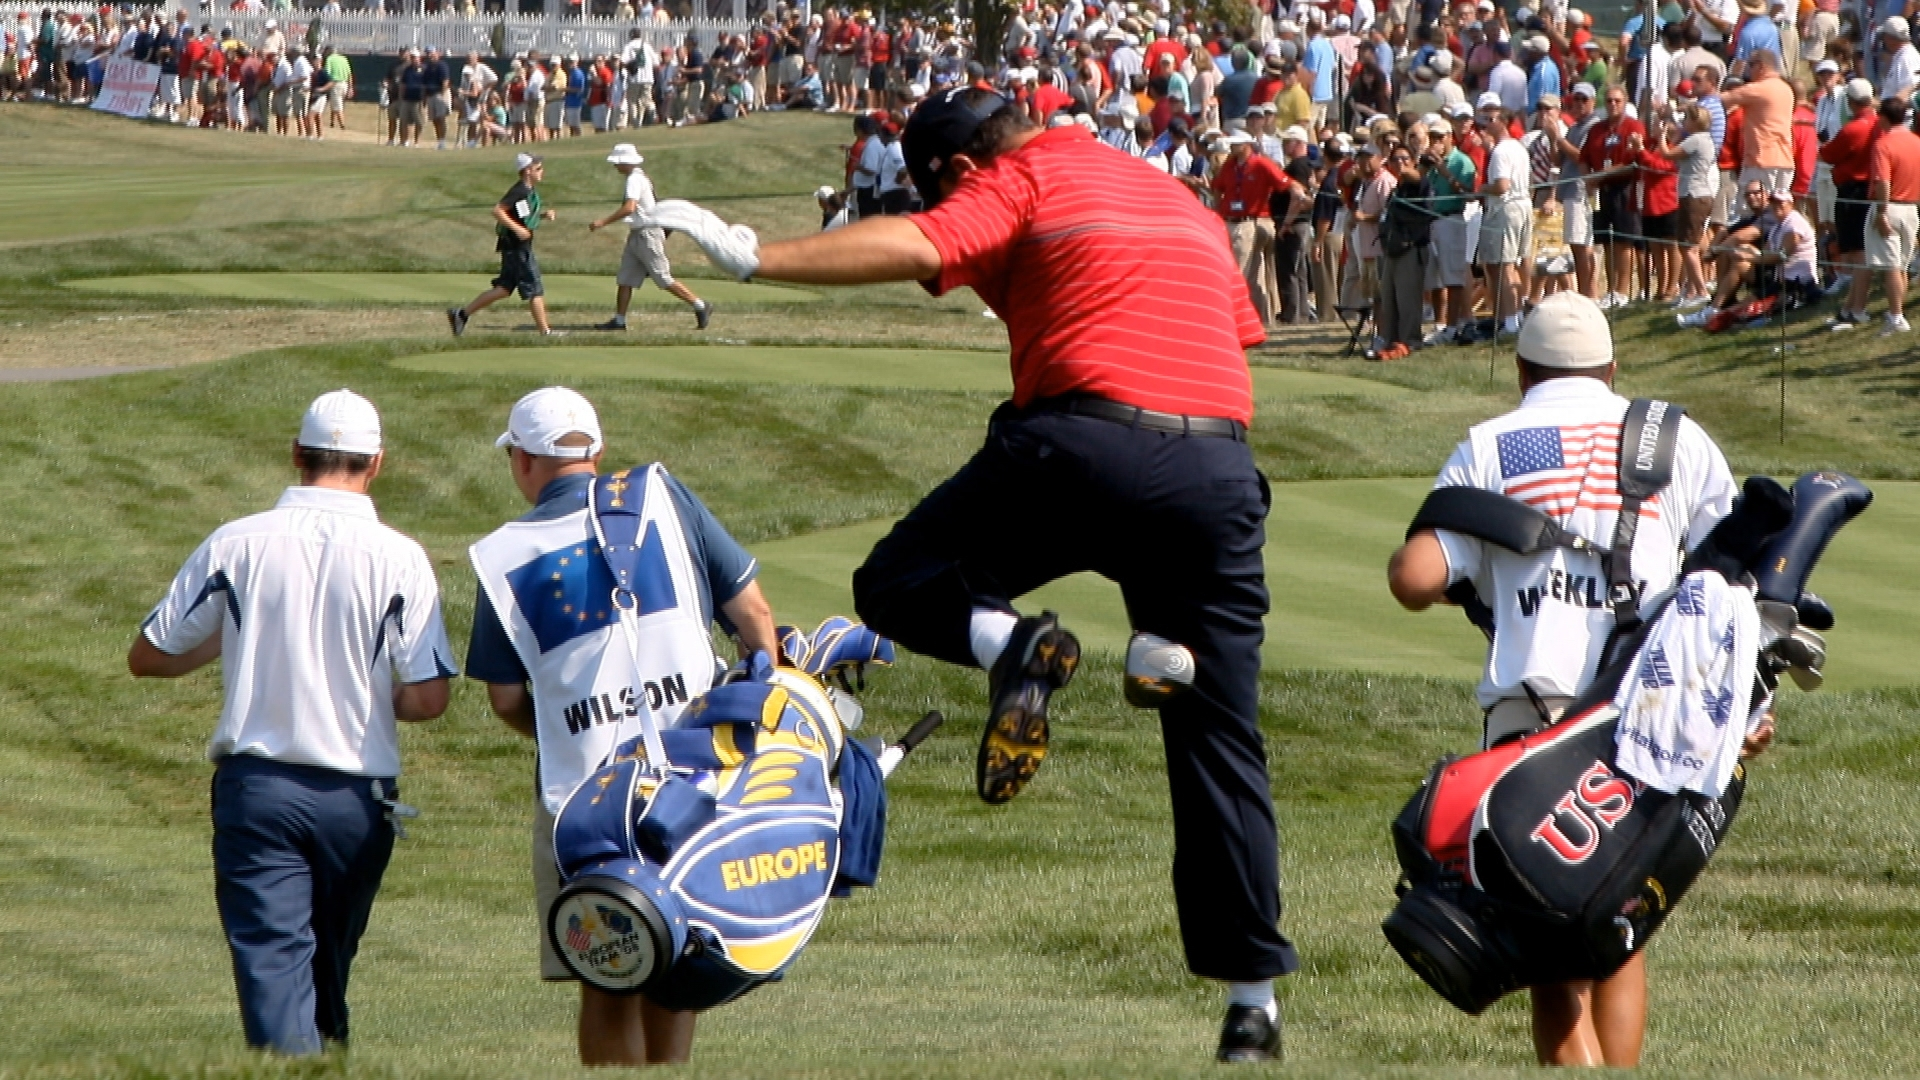 During Sunday's Ryder Cup singles matches, Boo Weekley rides off the first tee in full Happy Gilmore style. (2008)